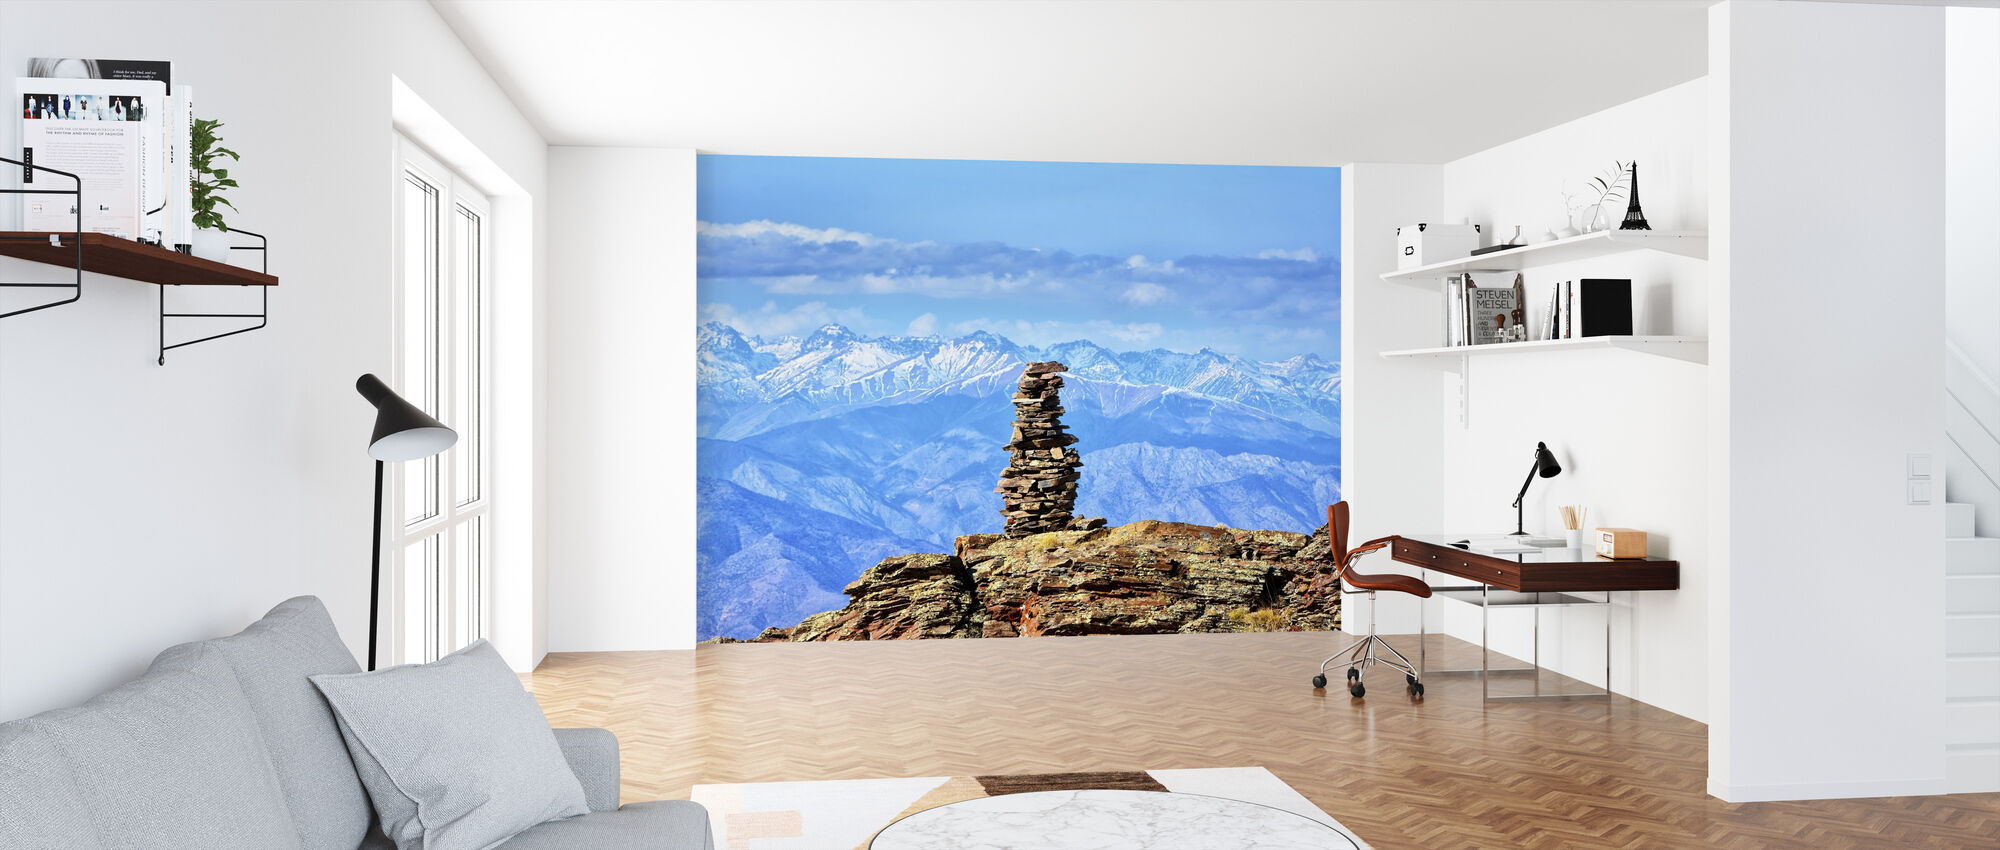 Mountain Highlands - Wallpaper - Office